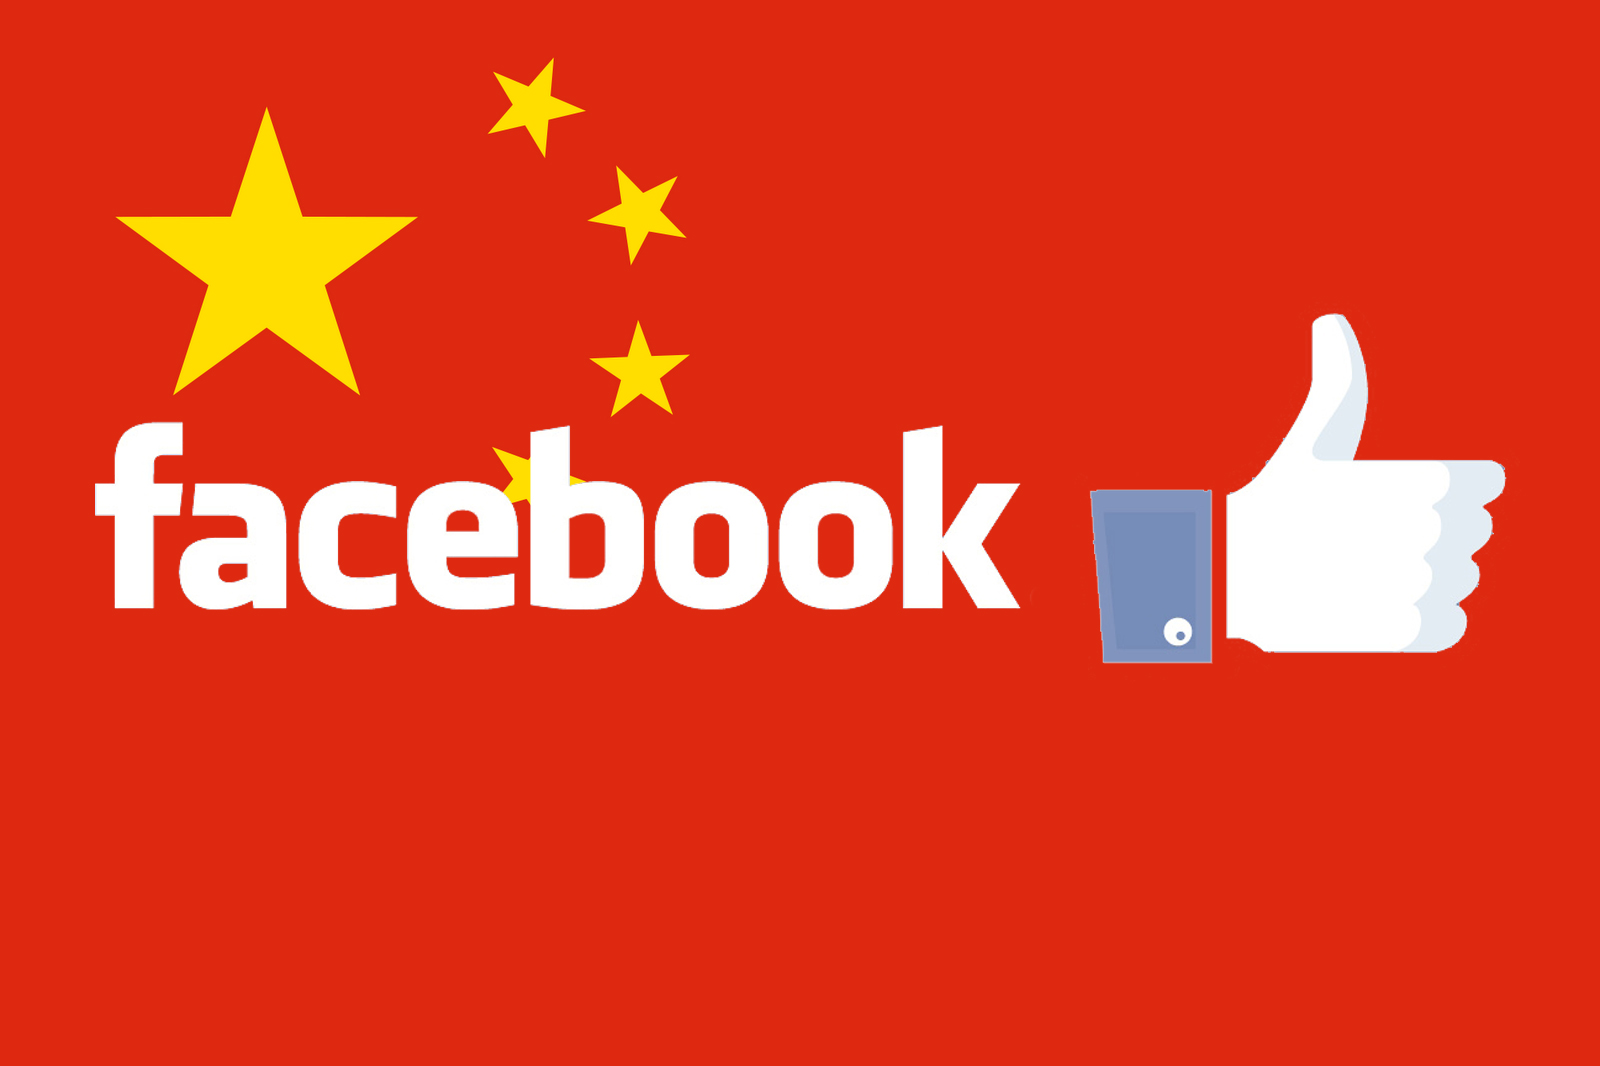 Cyberspace Official Says Facebook, Twitter Welcome in China